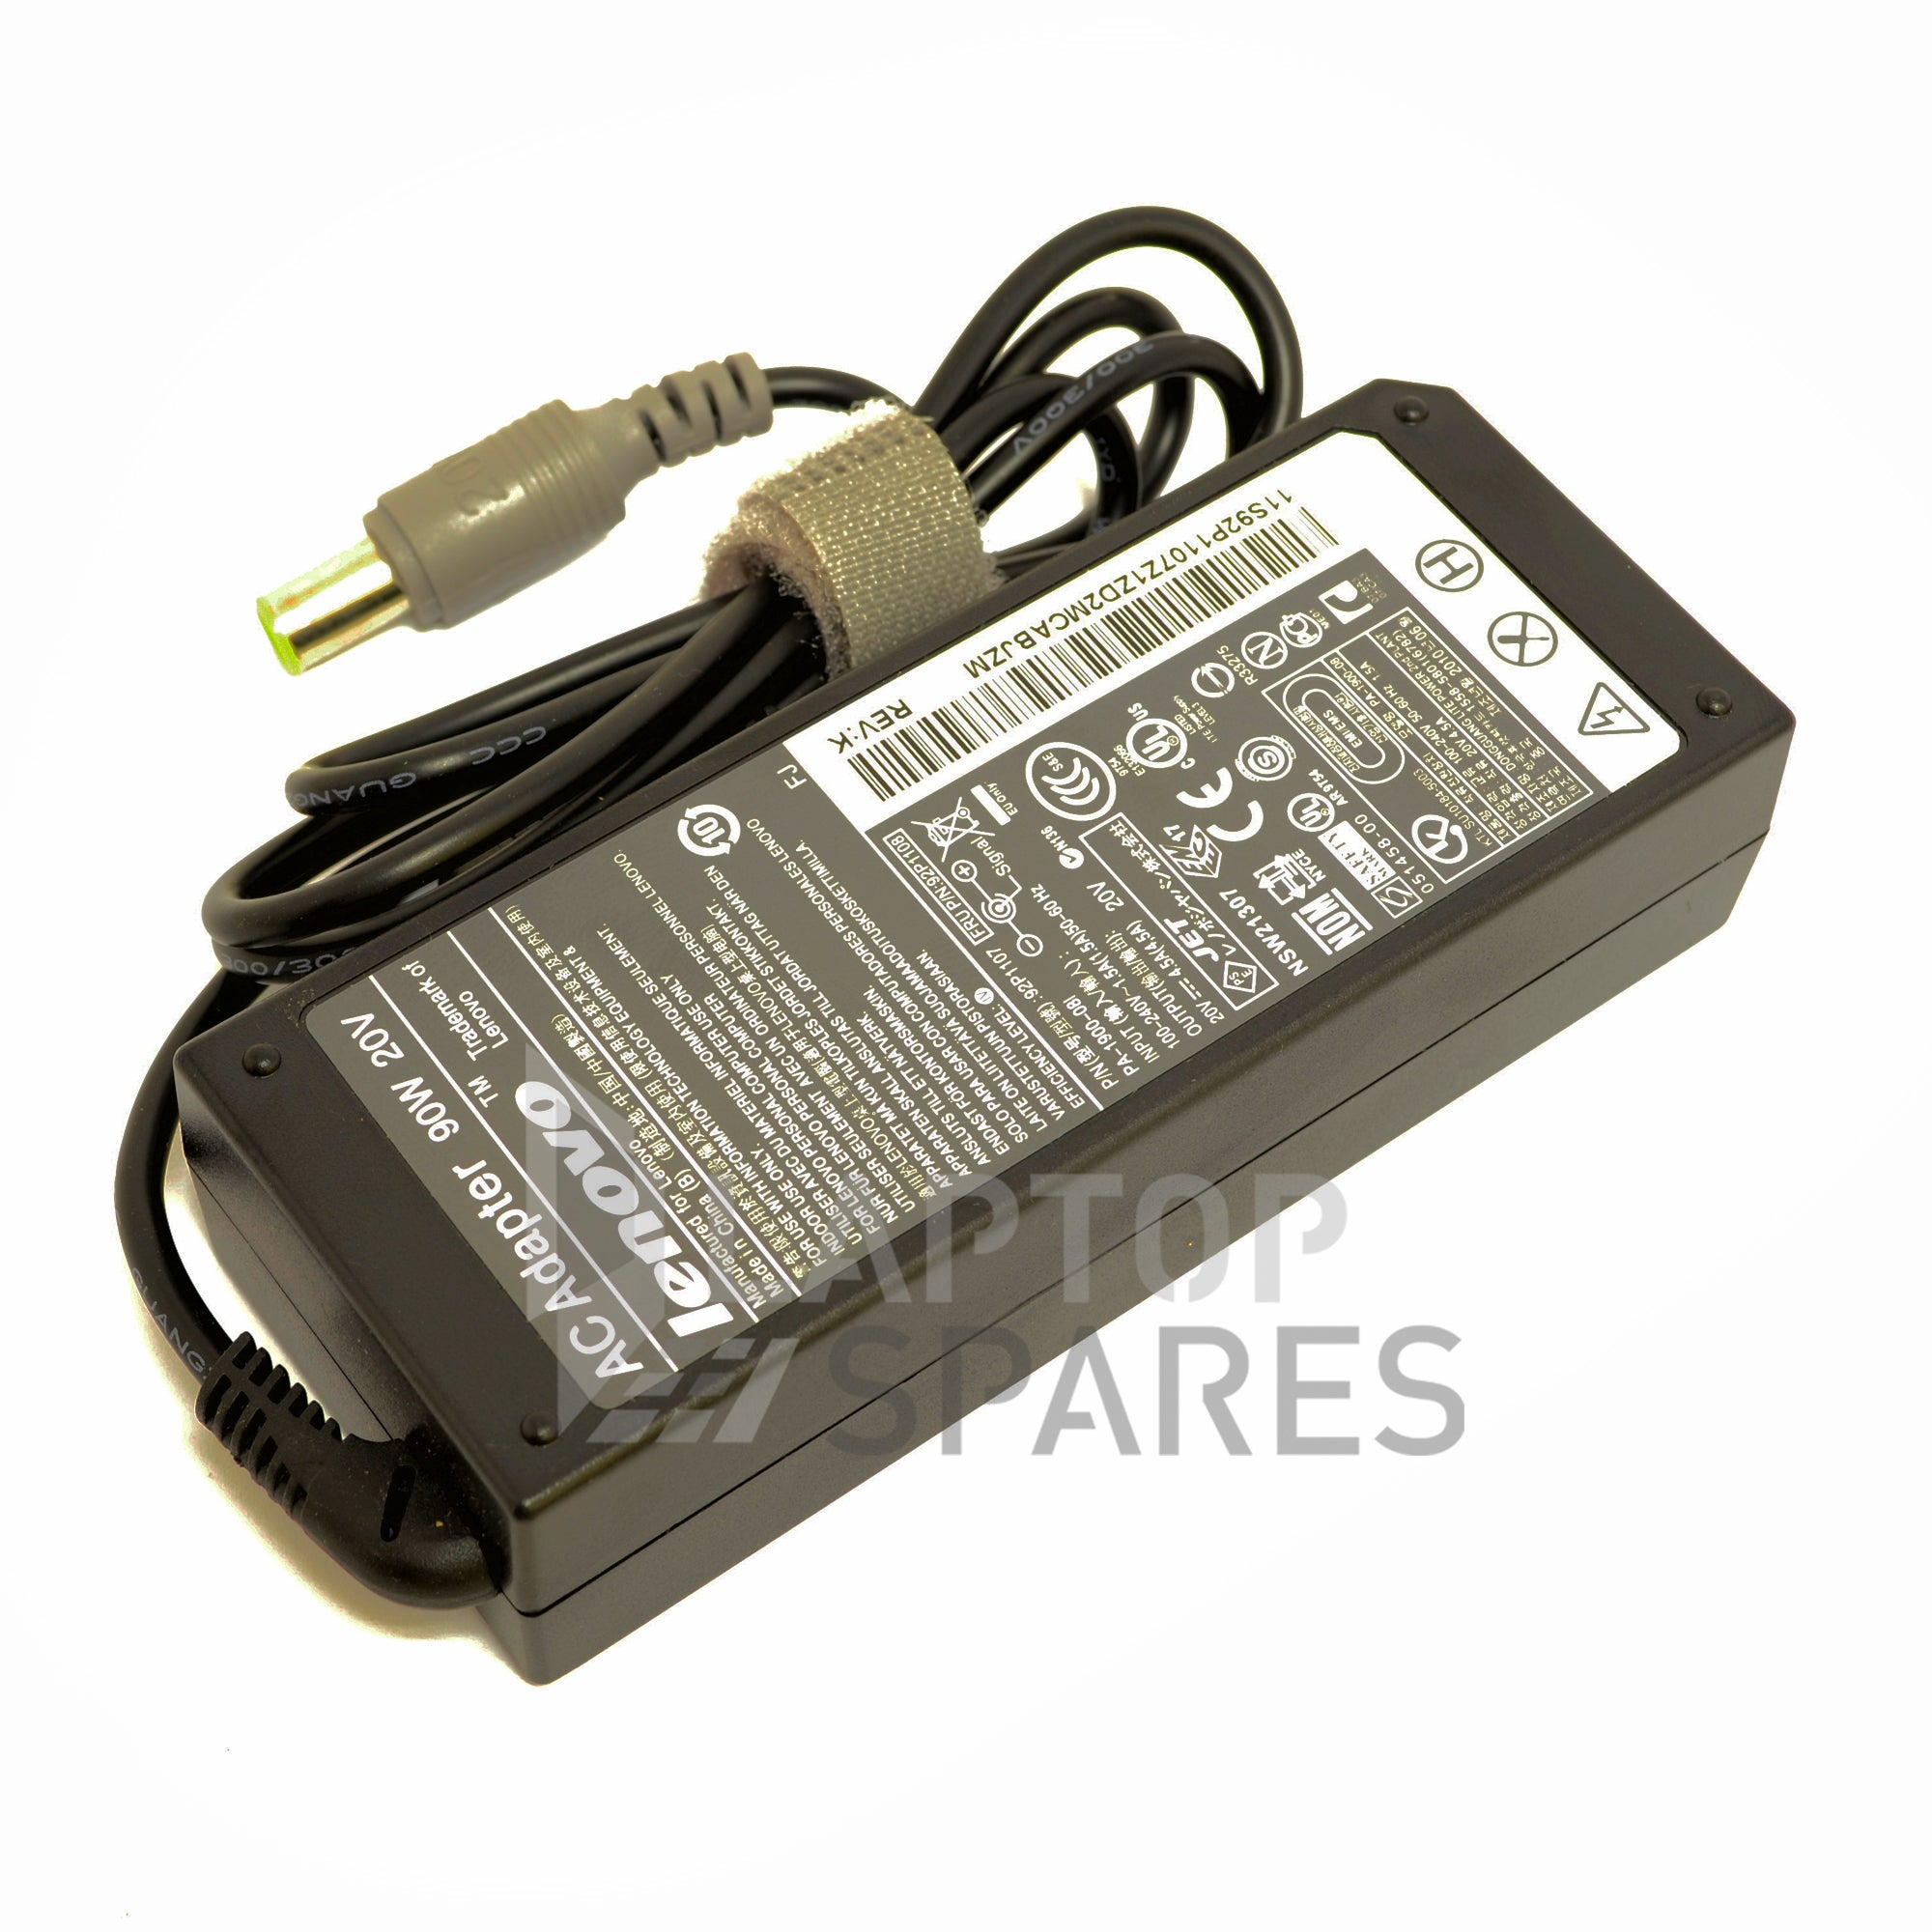 Lenovo ThinkPad X60 1708 X60 1709 Laptop AC Adapter Charger